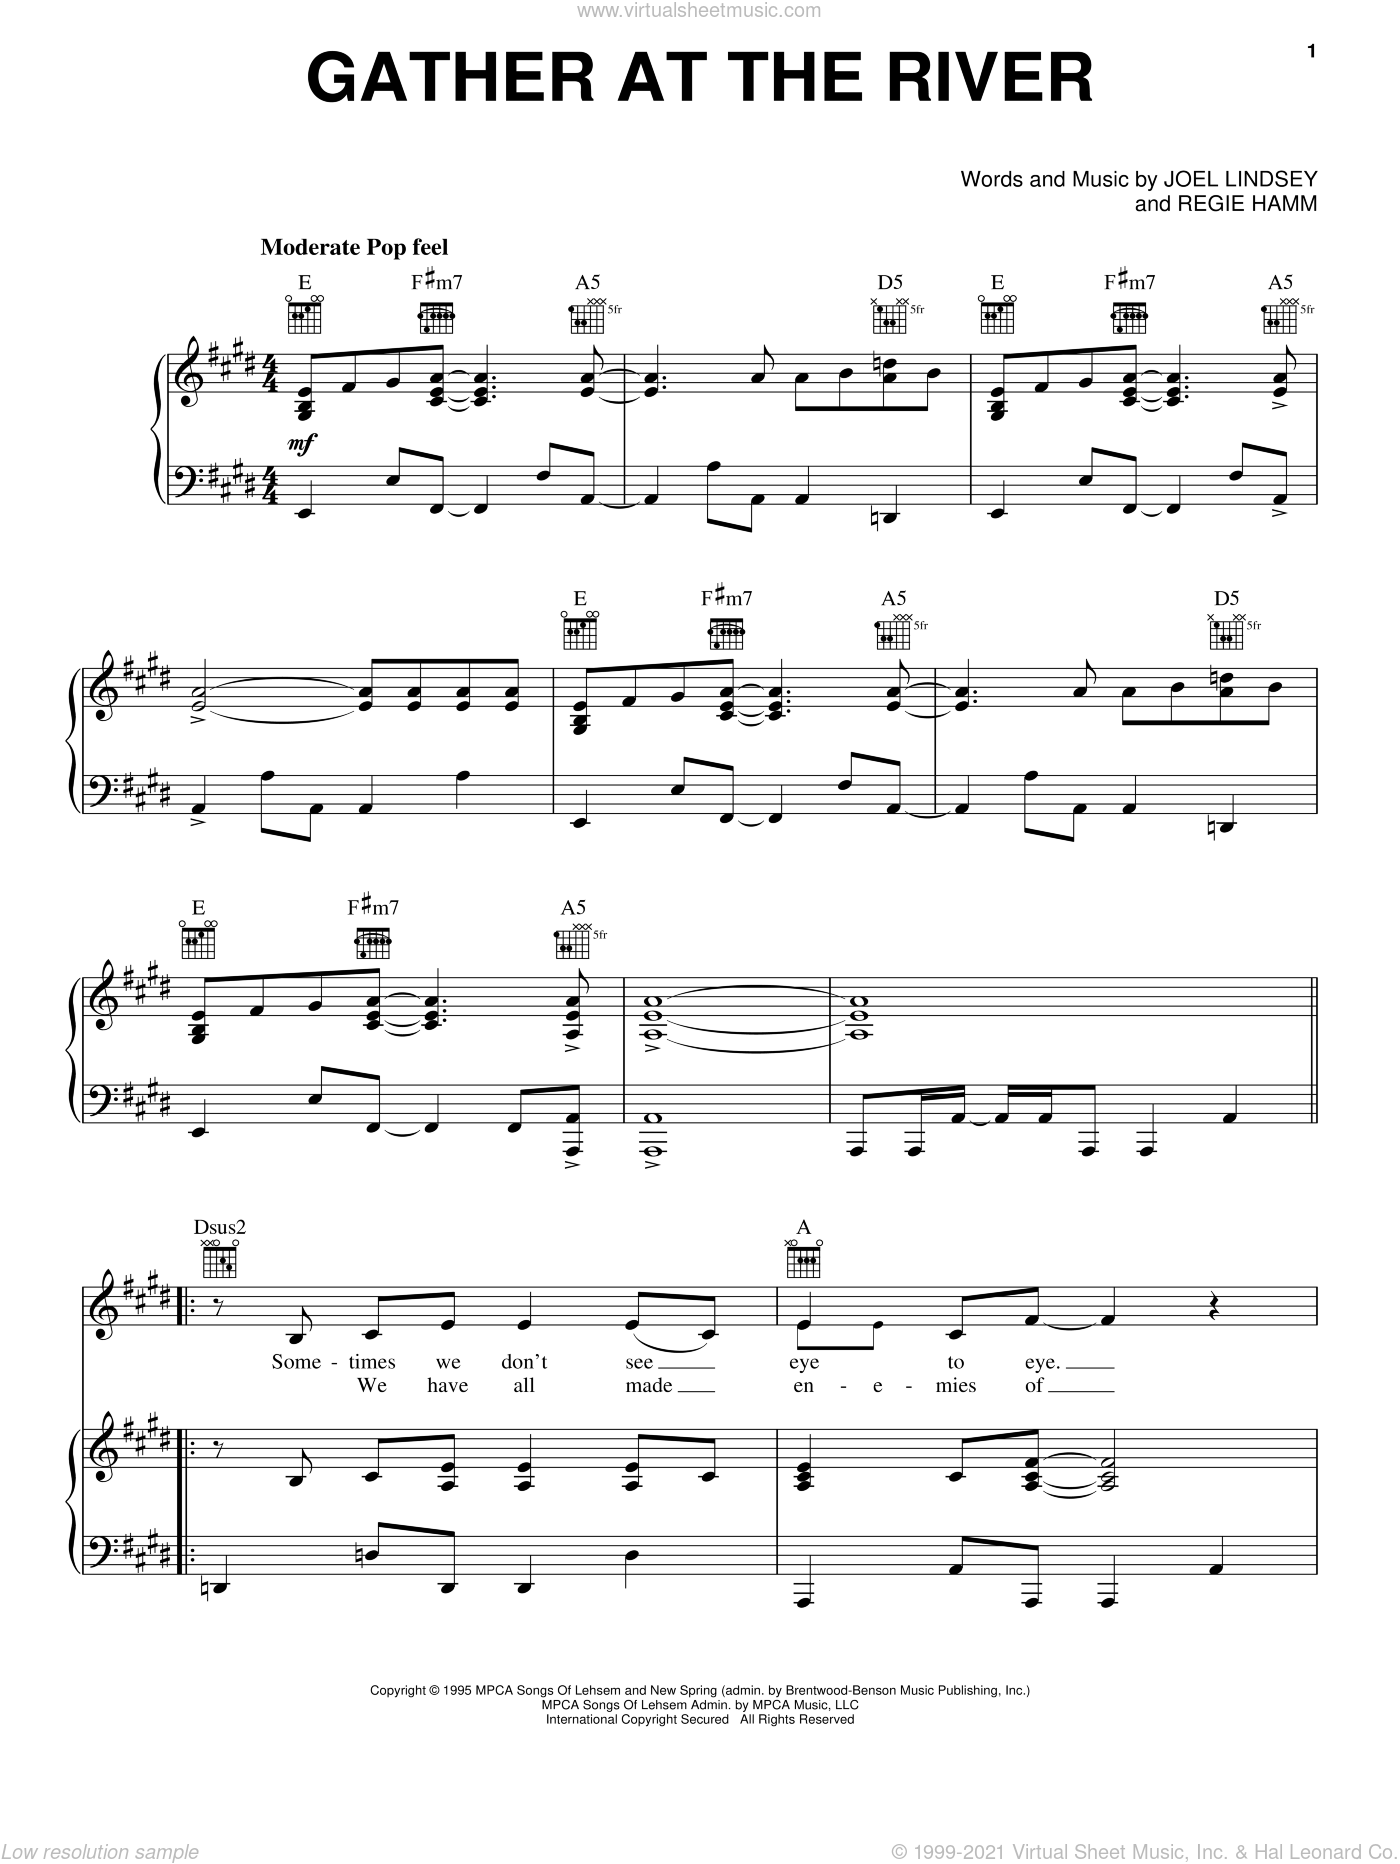 Gather At The River sheet music for voice, piano or guitar by Point Of Grace, Joel Lindsey and Regie Hamm, intermediate skill level